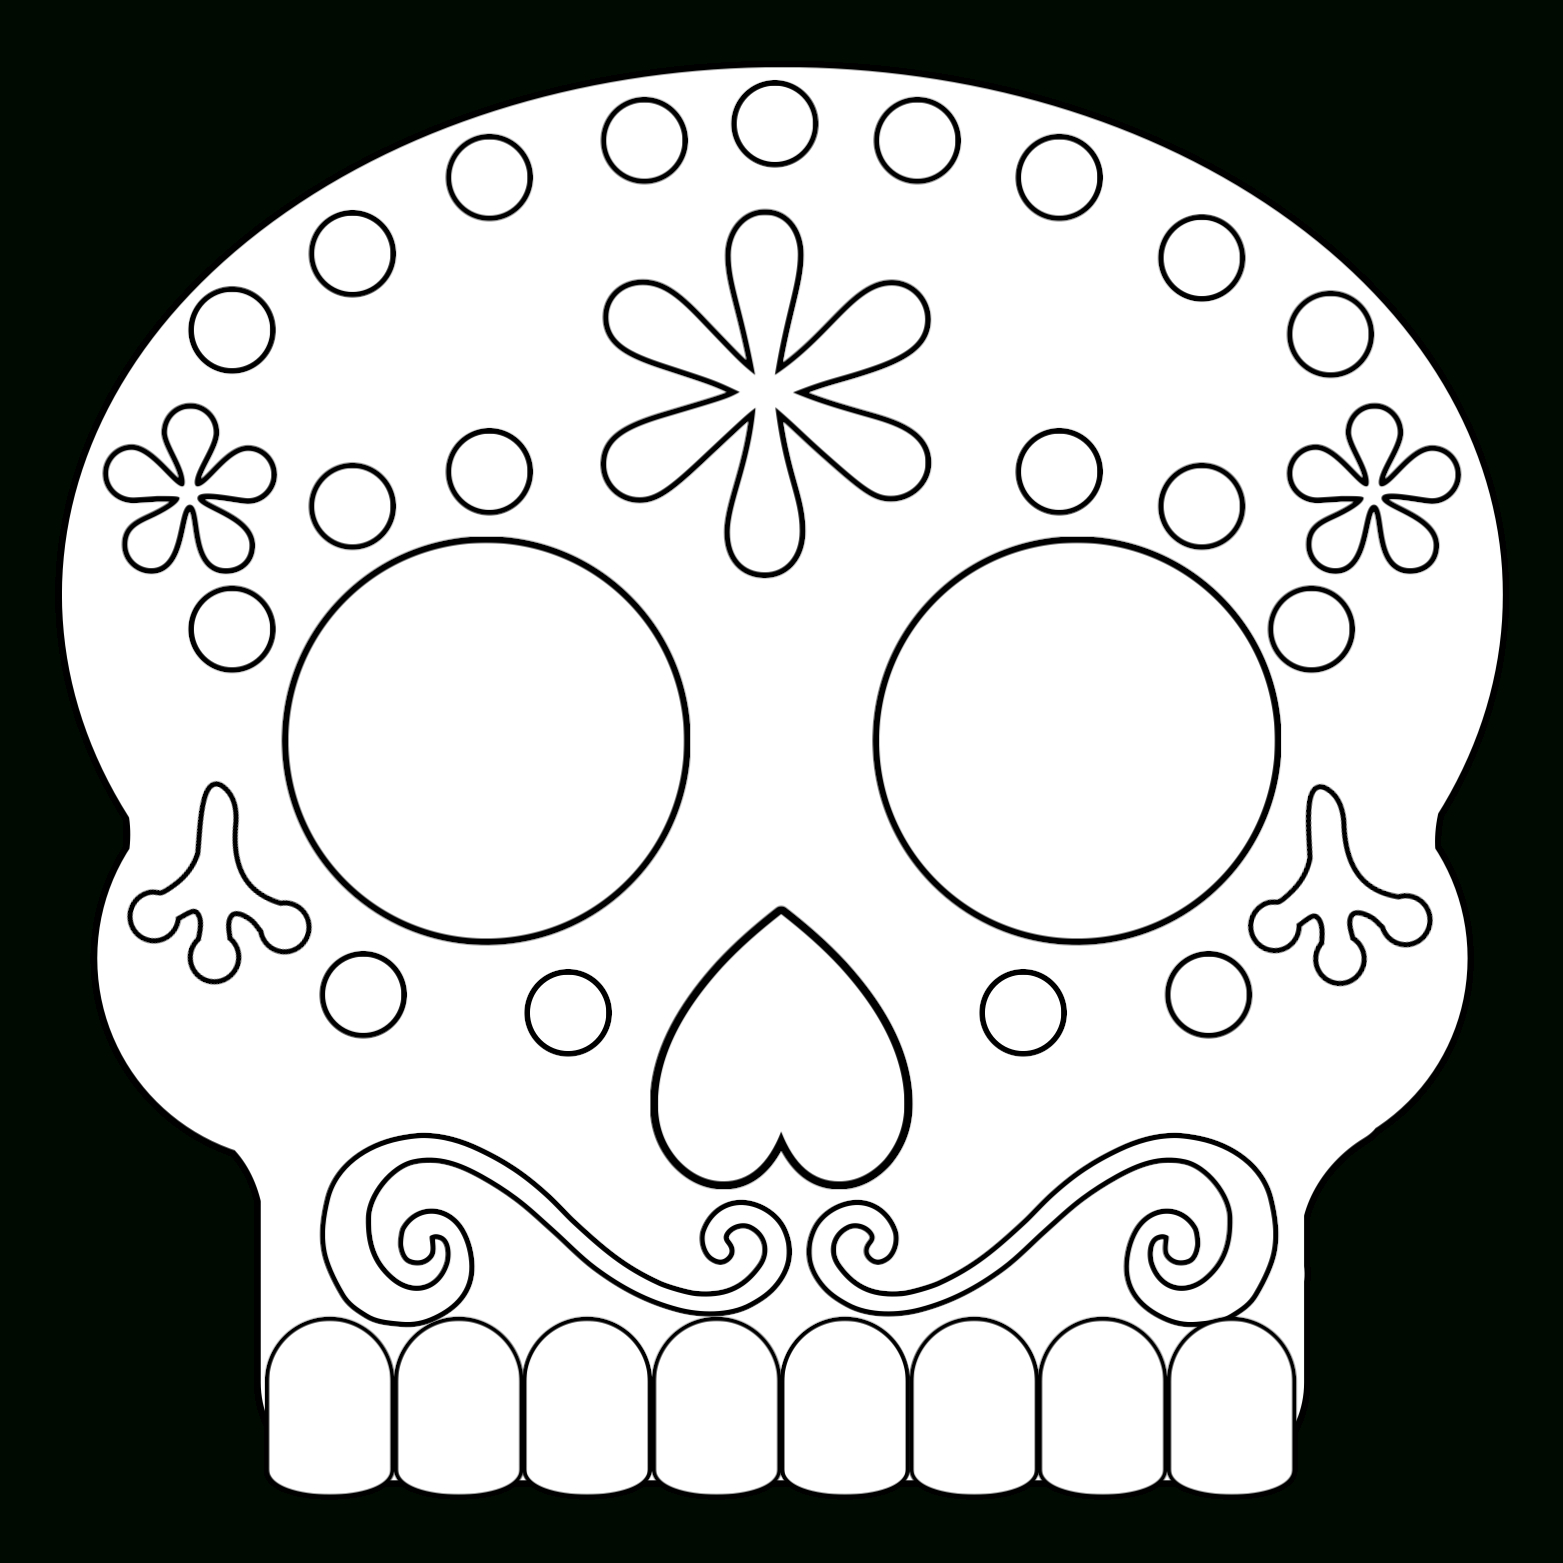 Day Of The Dead Masks Sugar Skulls Free Printable - Paper Trail Design - Free Printable Sugar Skull Day Of The Dead Mask